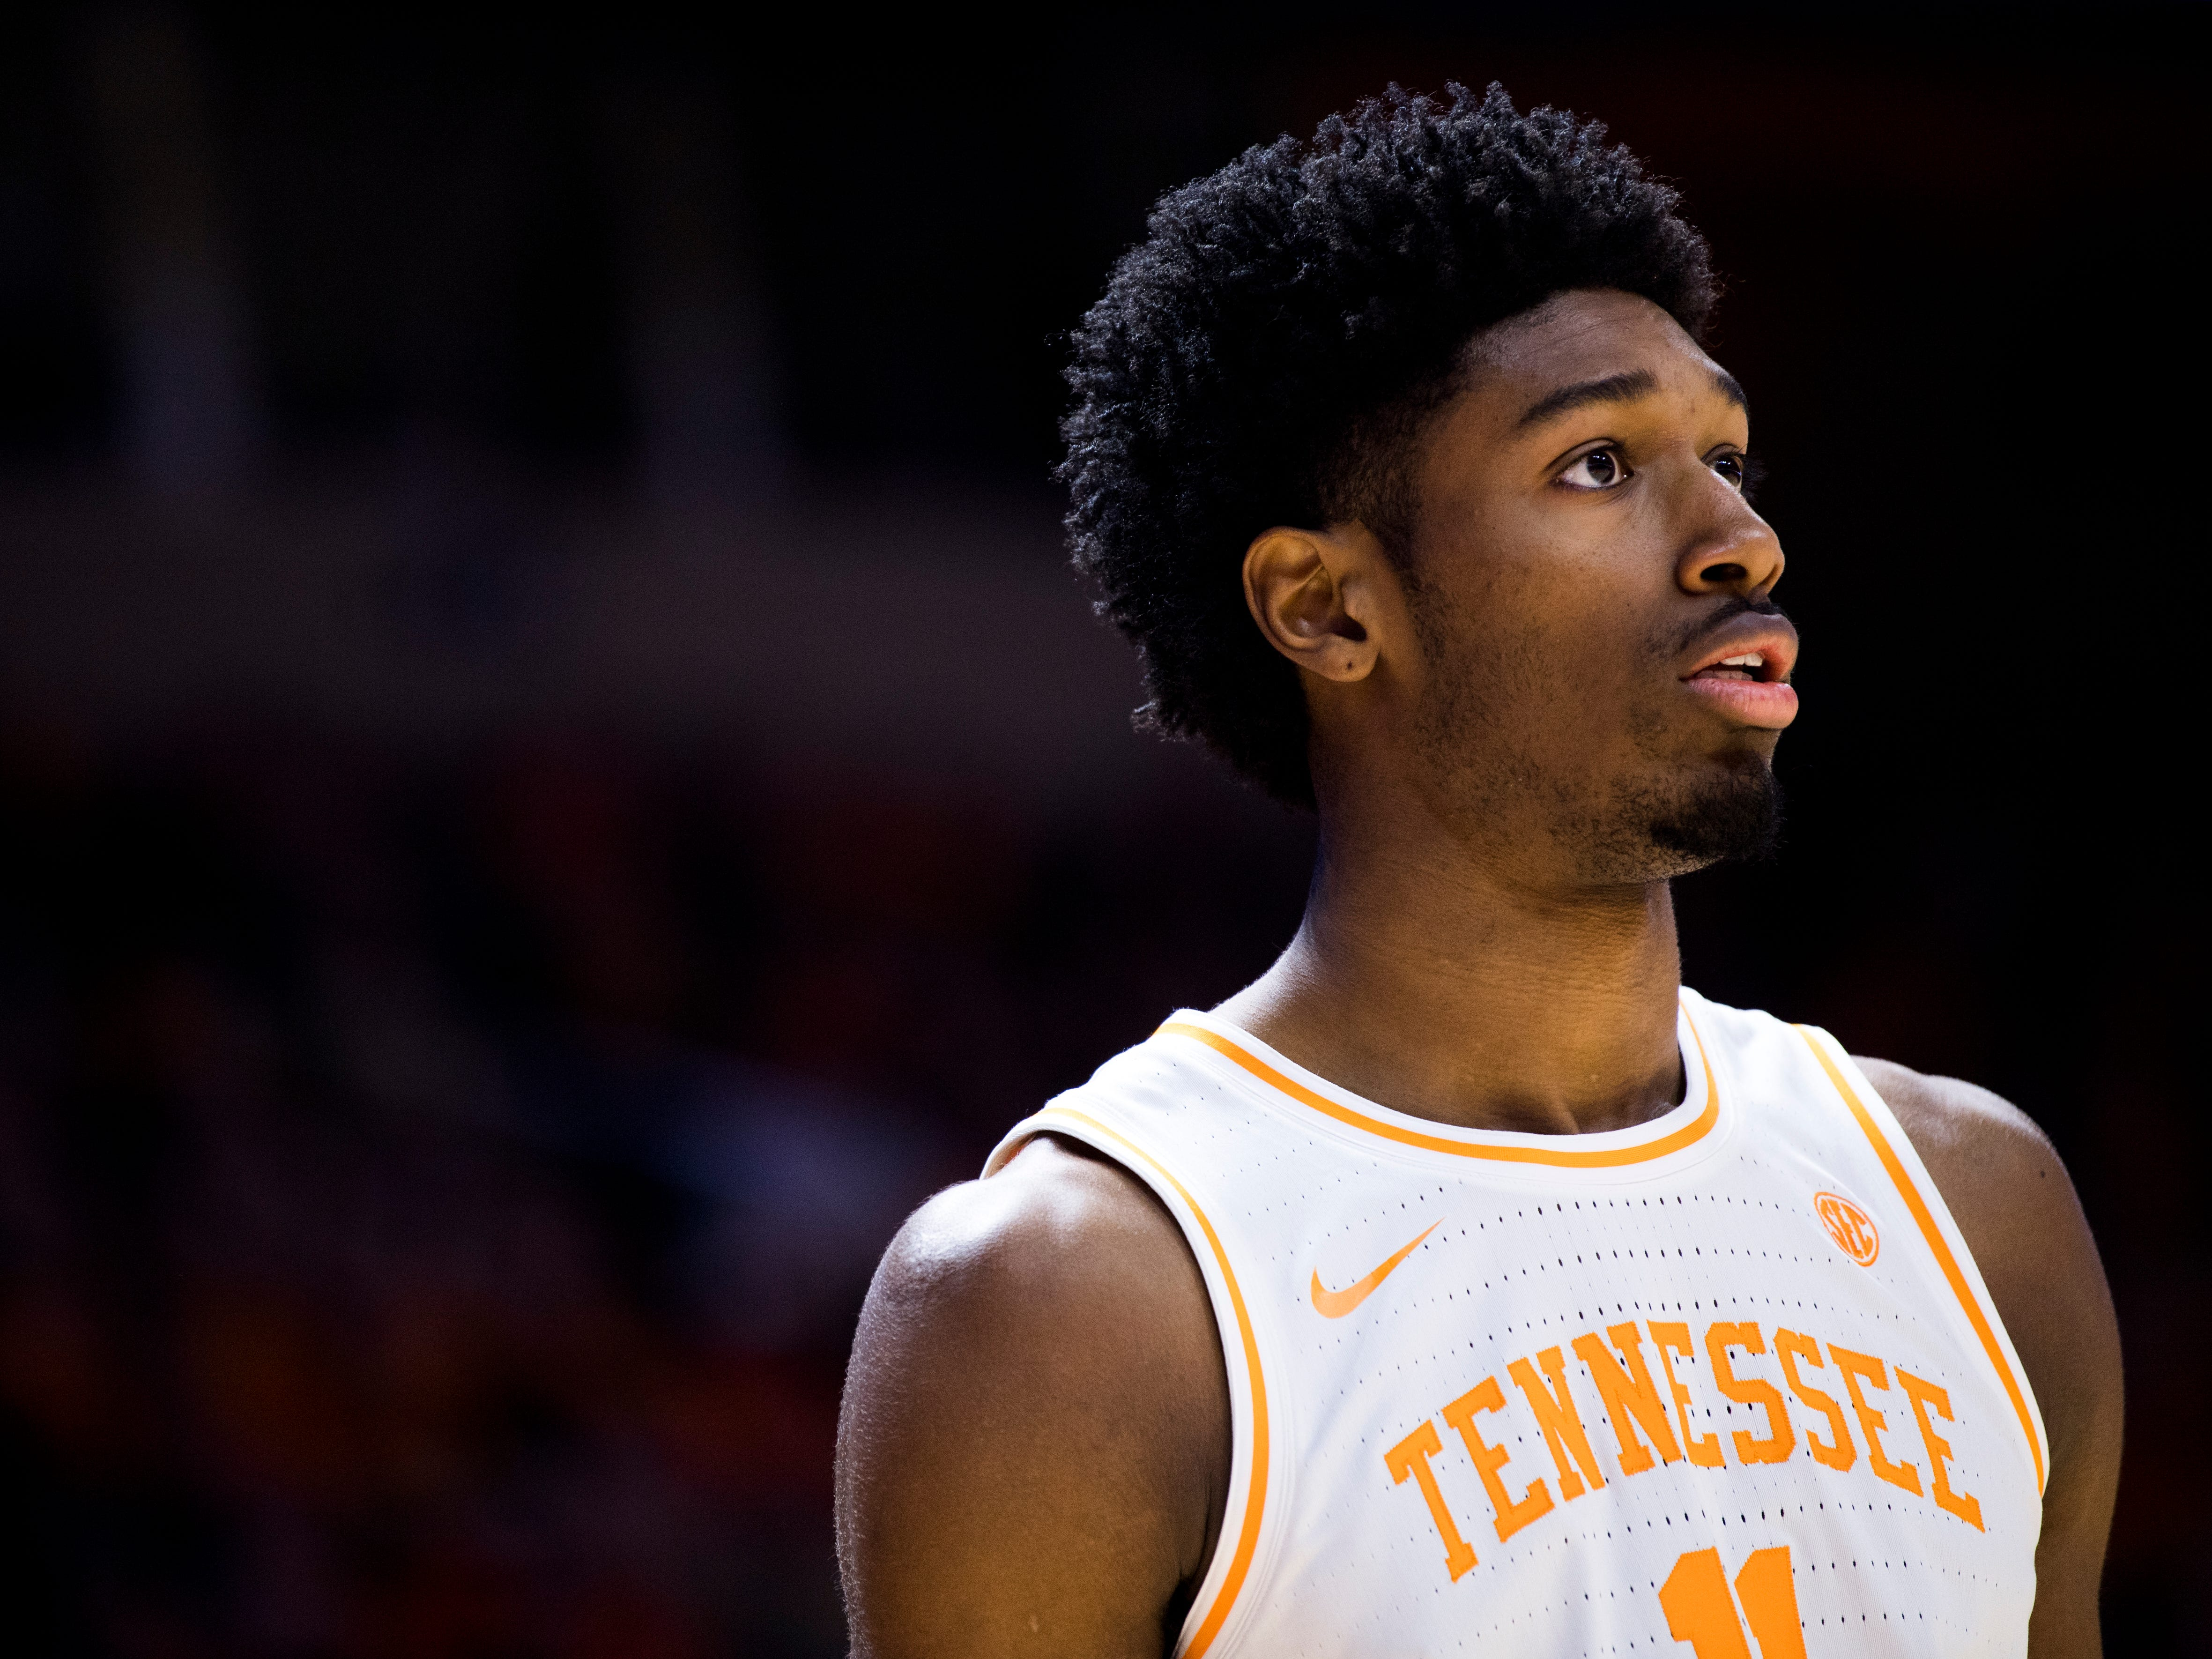 Tennessee forward Kyle Alexander (11) during Tennessee's home SEC game against South Carolina at Thompson-Boling Arena in Knoxville on Wednesday, February 13, 2019.